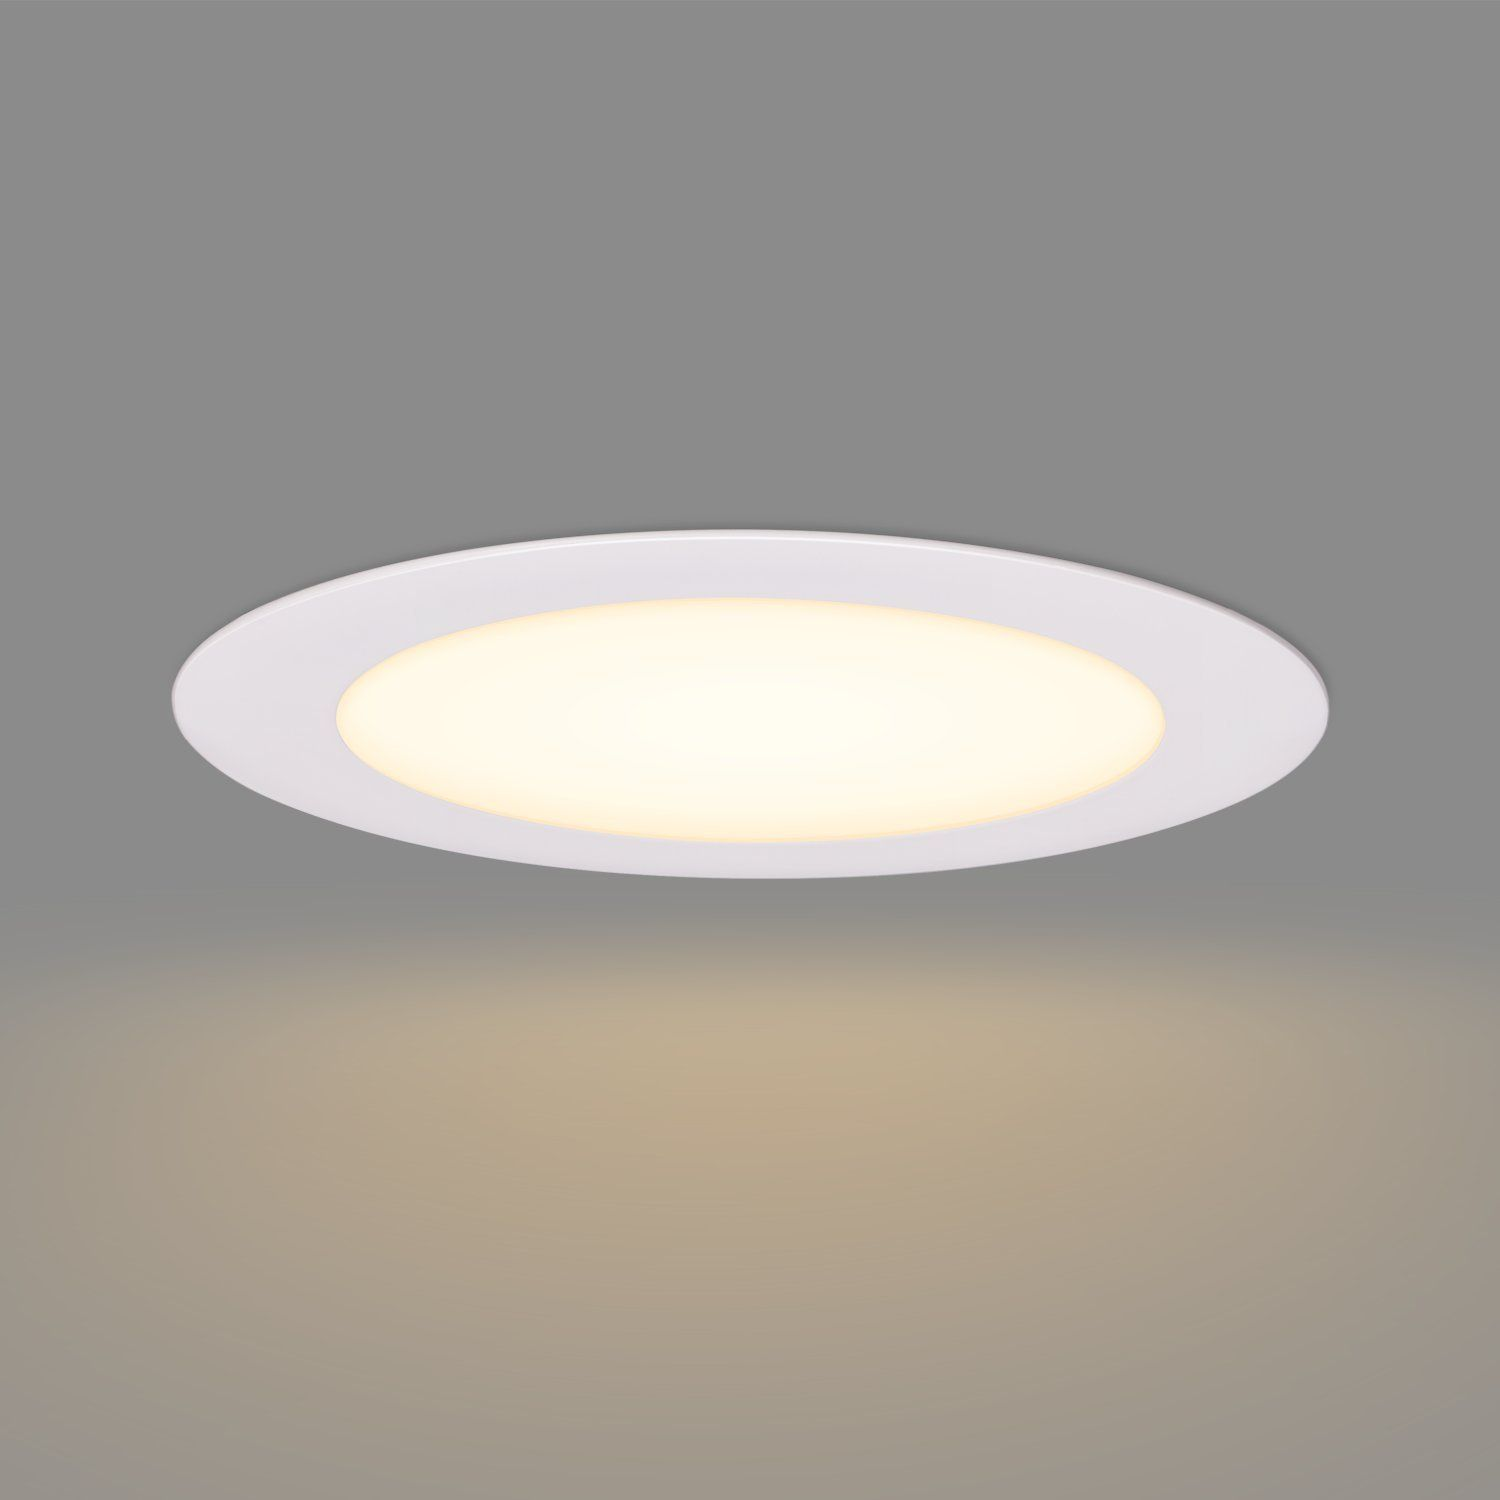 Getinlight Slim Dimmable 3 Inch Led Recessed Lighting Round Ceiling Panel Junction Box Included 4000kbri Recessed Lighting Led Recessed Lighting Ceiling Panels